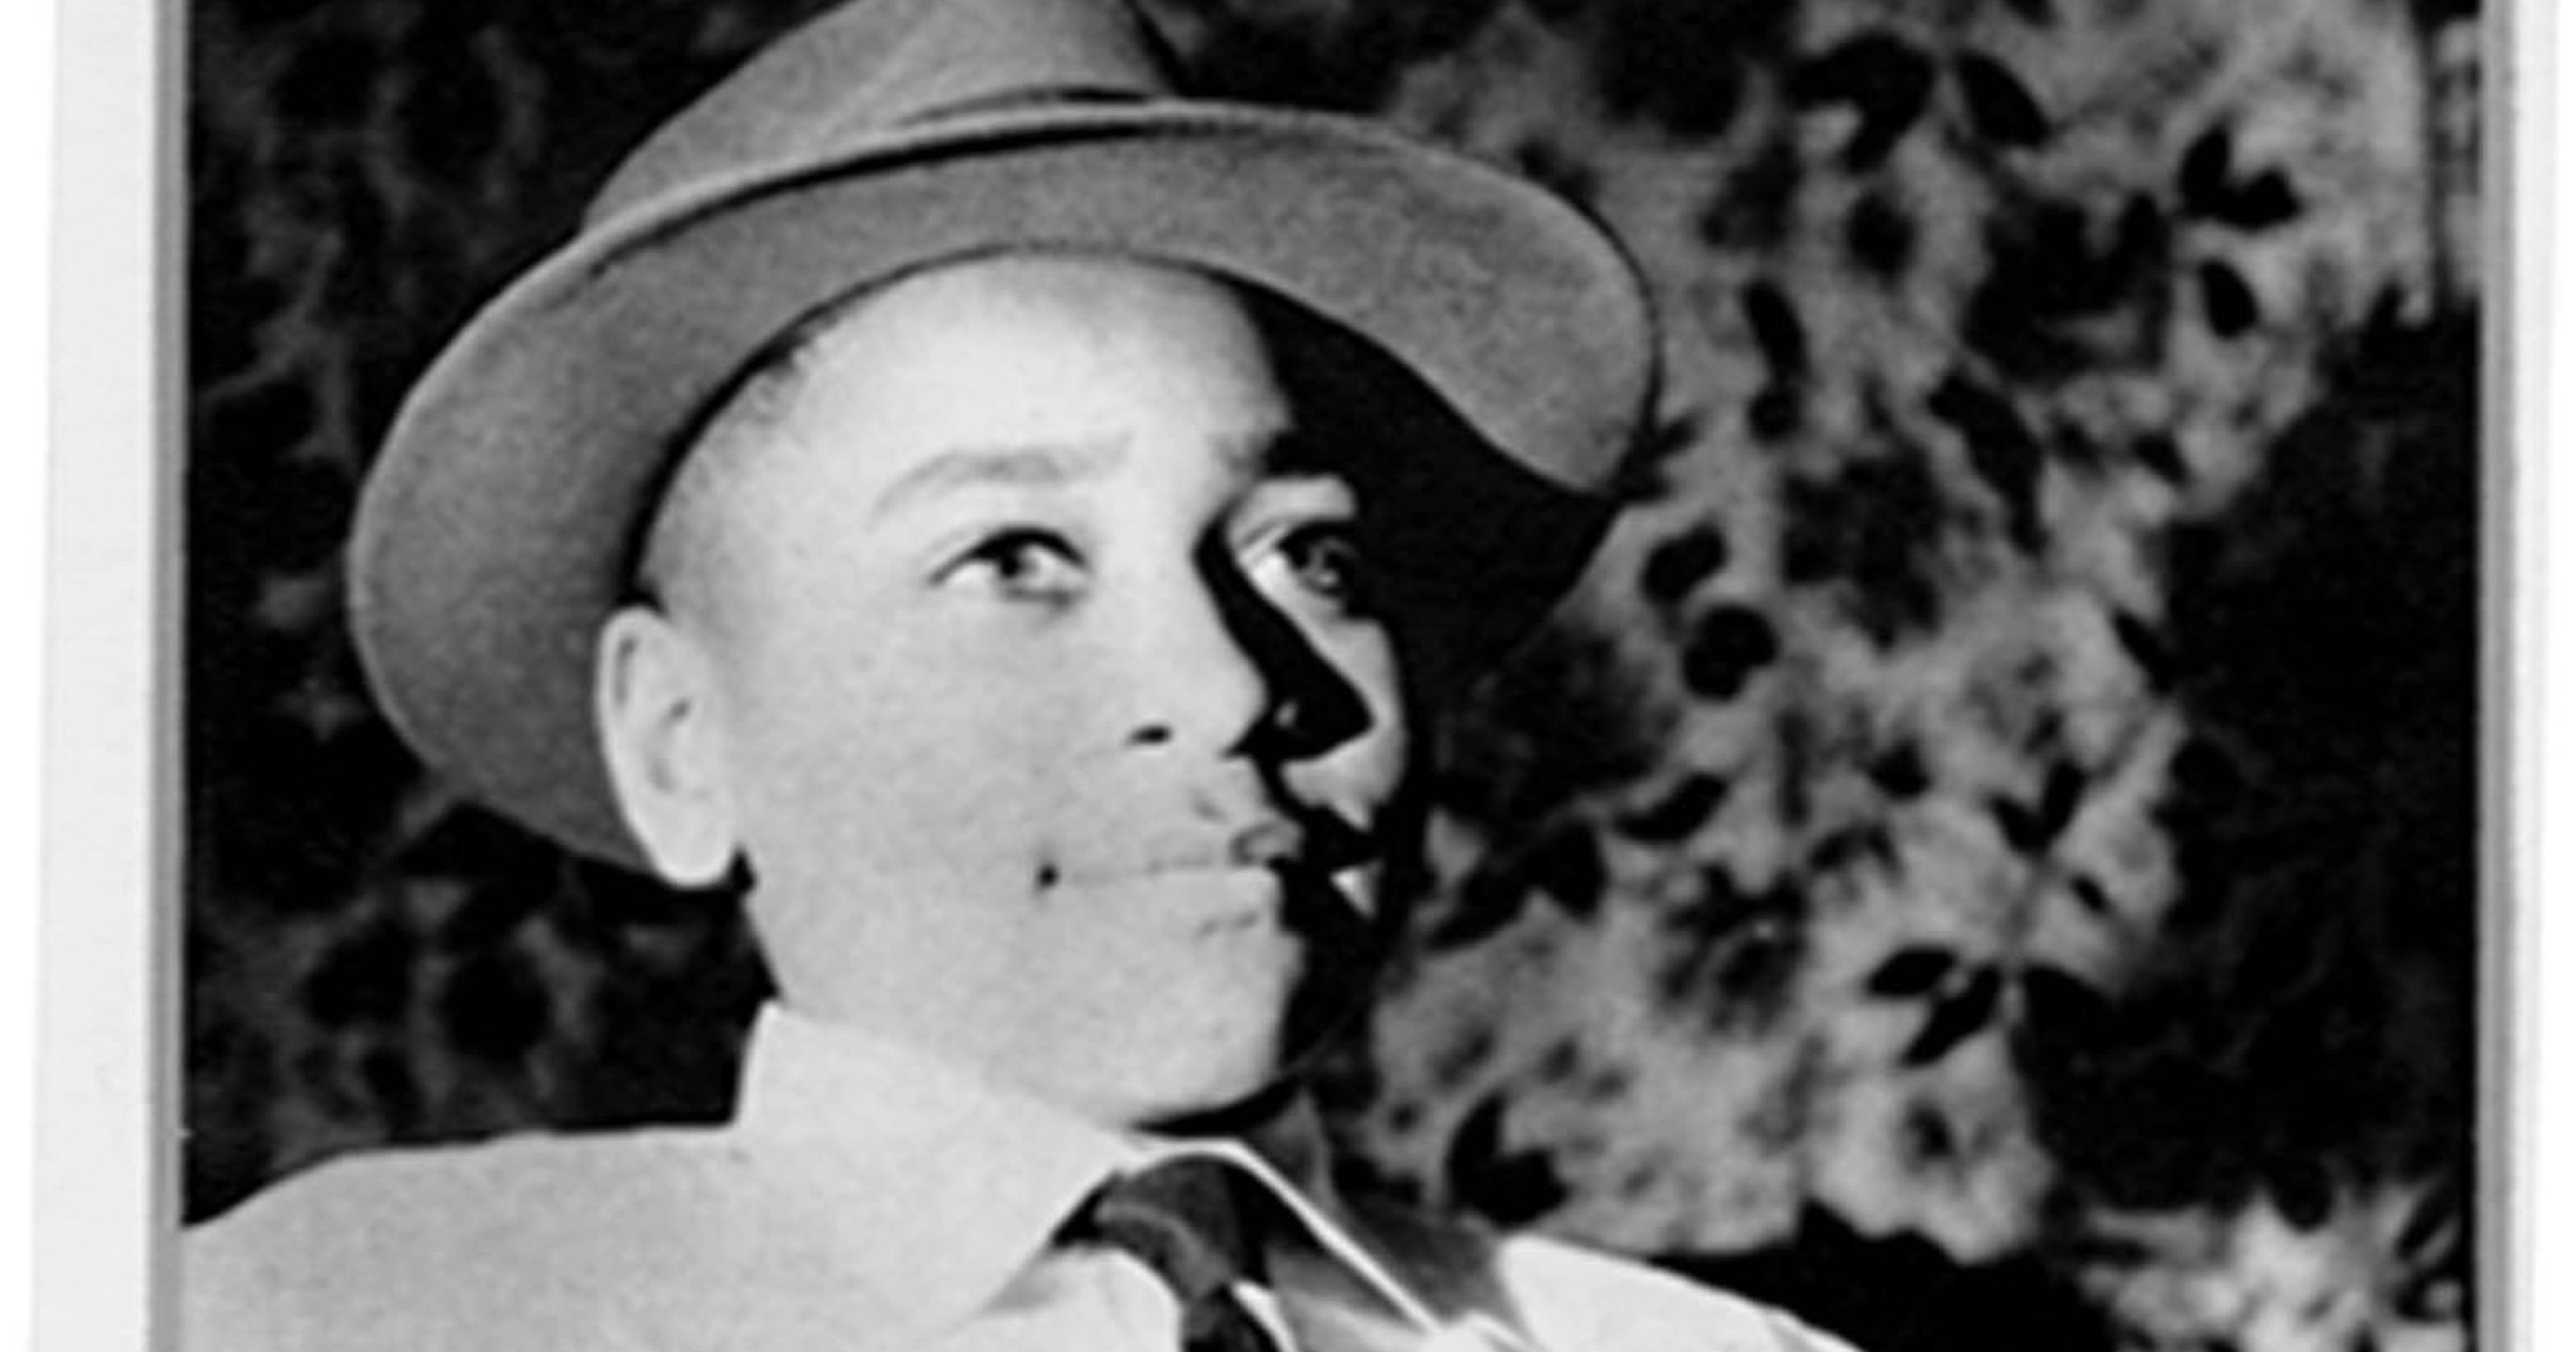 Questions about Emmett Till? Here are the answers